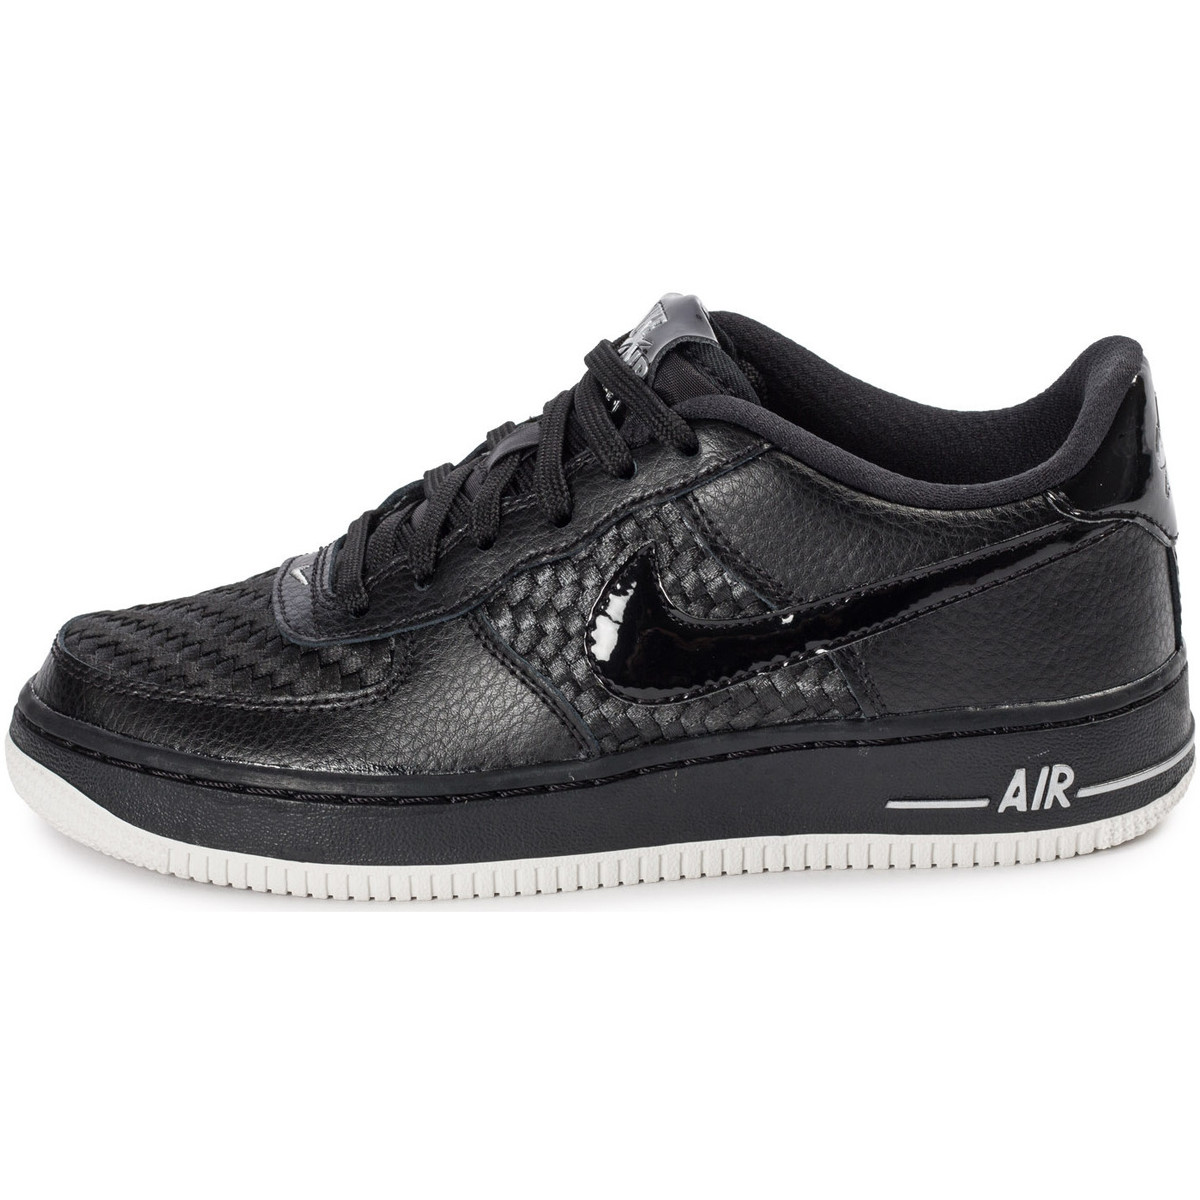 Nike Air Force 1 Lv8 Low Enfant Noir